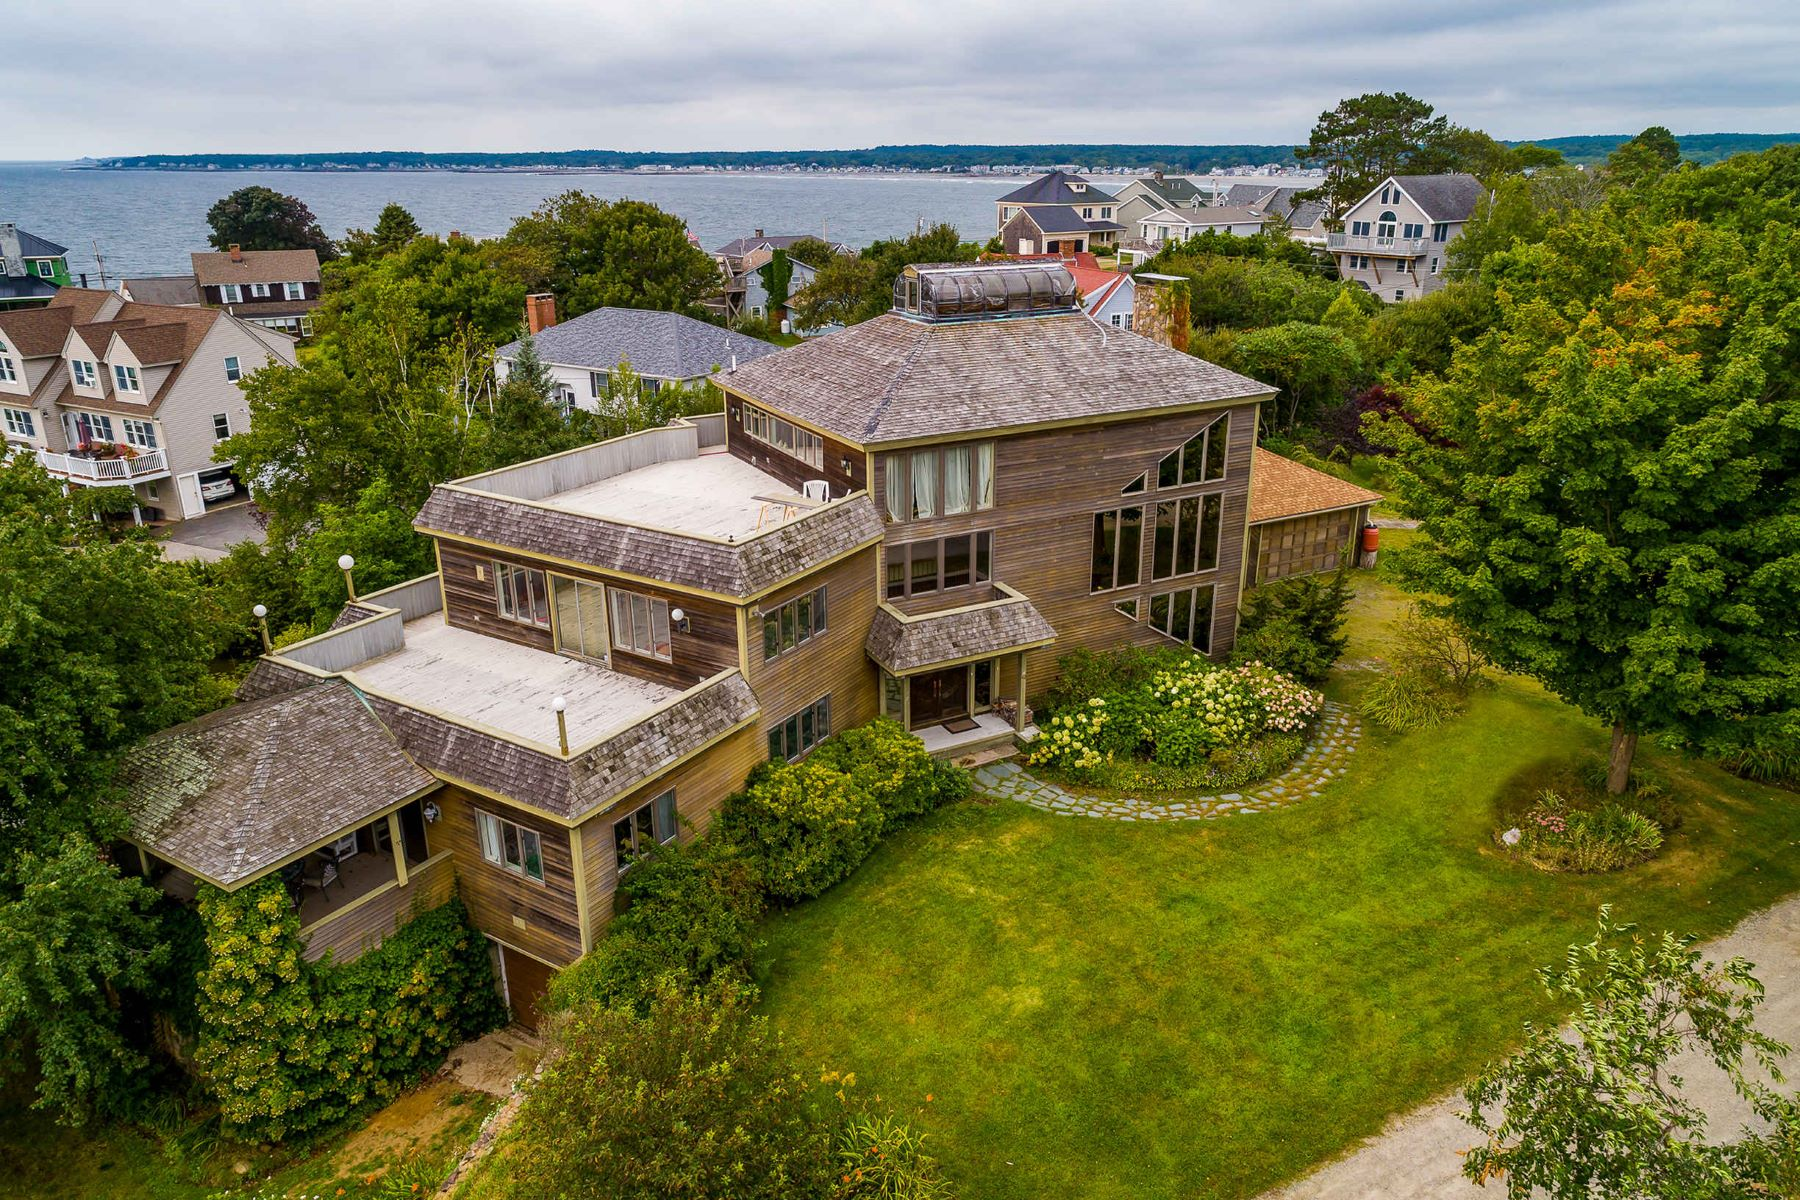 Single Family Homes for Active at One of a Kind Contemporary on Nubble Peninsula 42 Shelton Drive York, Maine 03909 United States